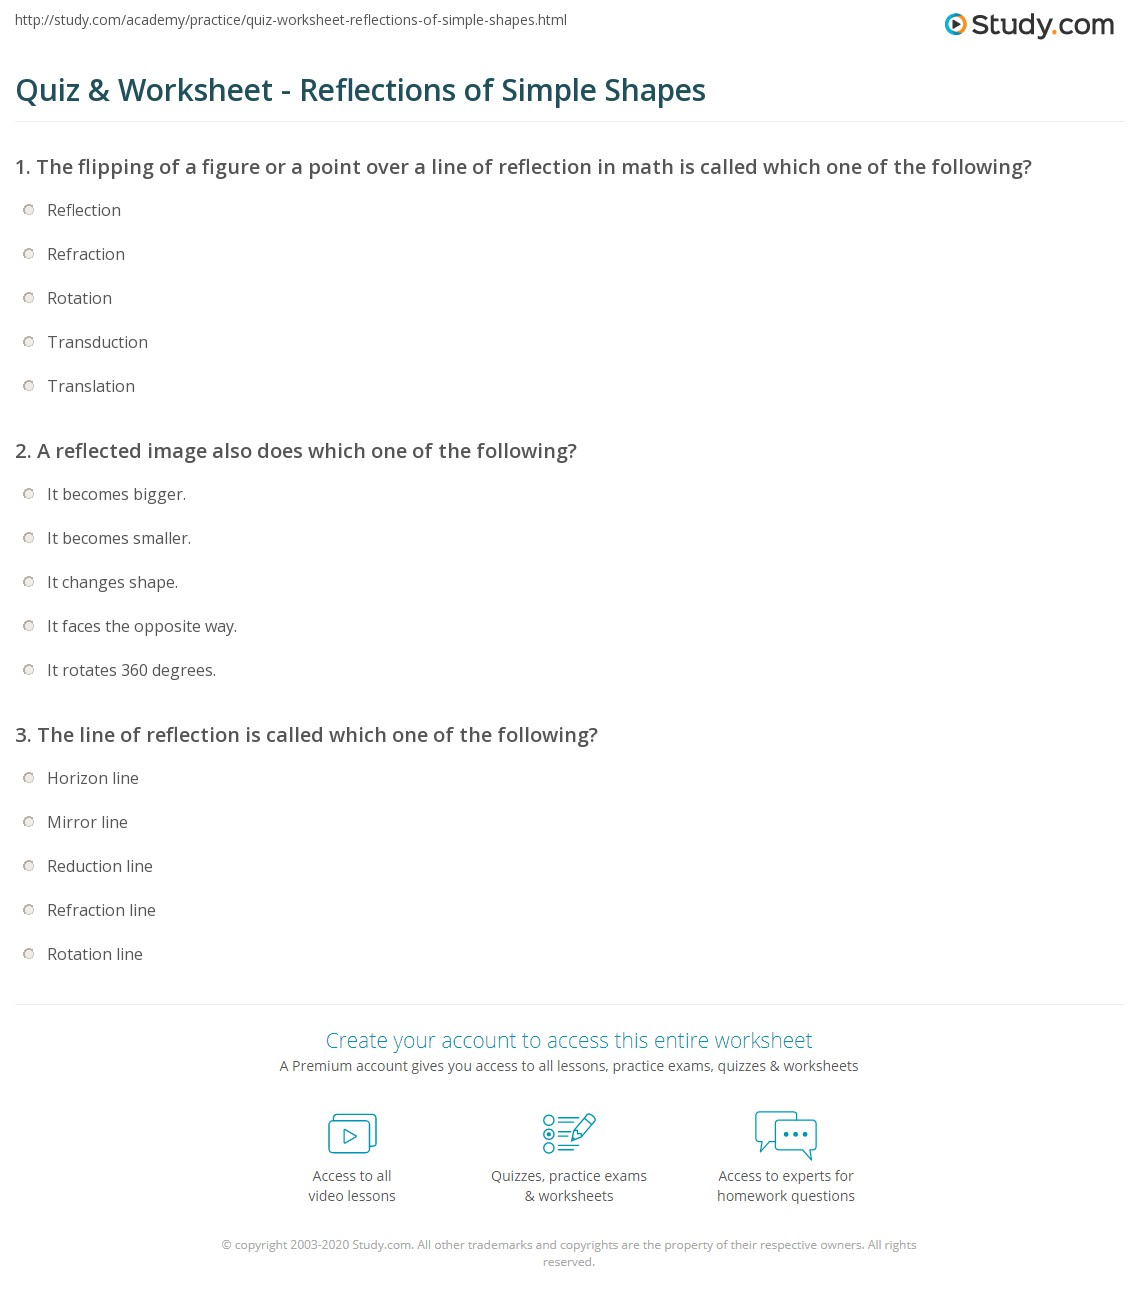 Worksheets Reflections Worksheet quiz worksheet reflections of simple shapes study com print reflecting in a mirror line worksheet